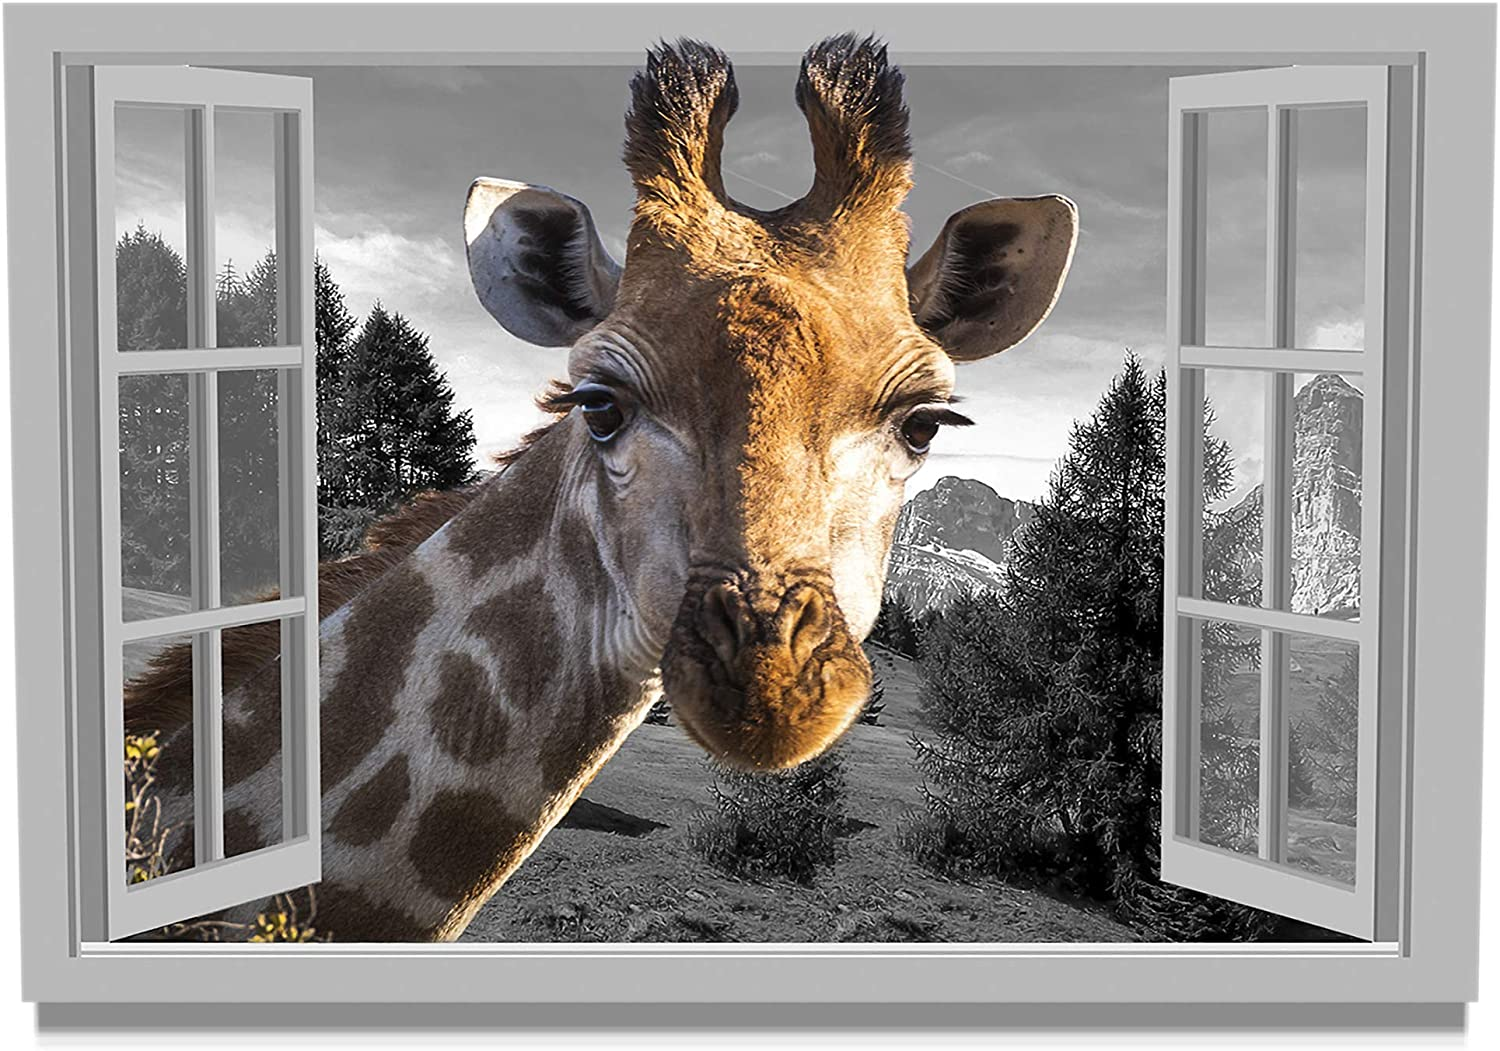 Giraffe Canvas Wall Art for Living Room Bedroom Wall Decor 16x24Inch Framed Animal Head from Open Window Bathroom Wall Decoration Prints Painting Black White Window View Landscape Wall Picture